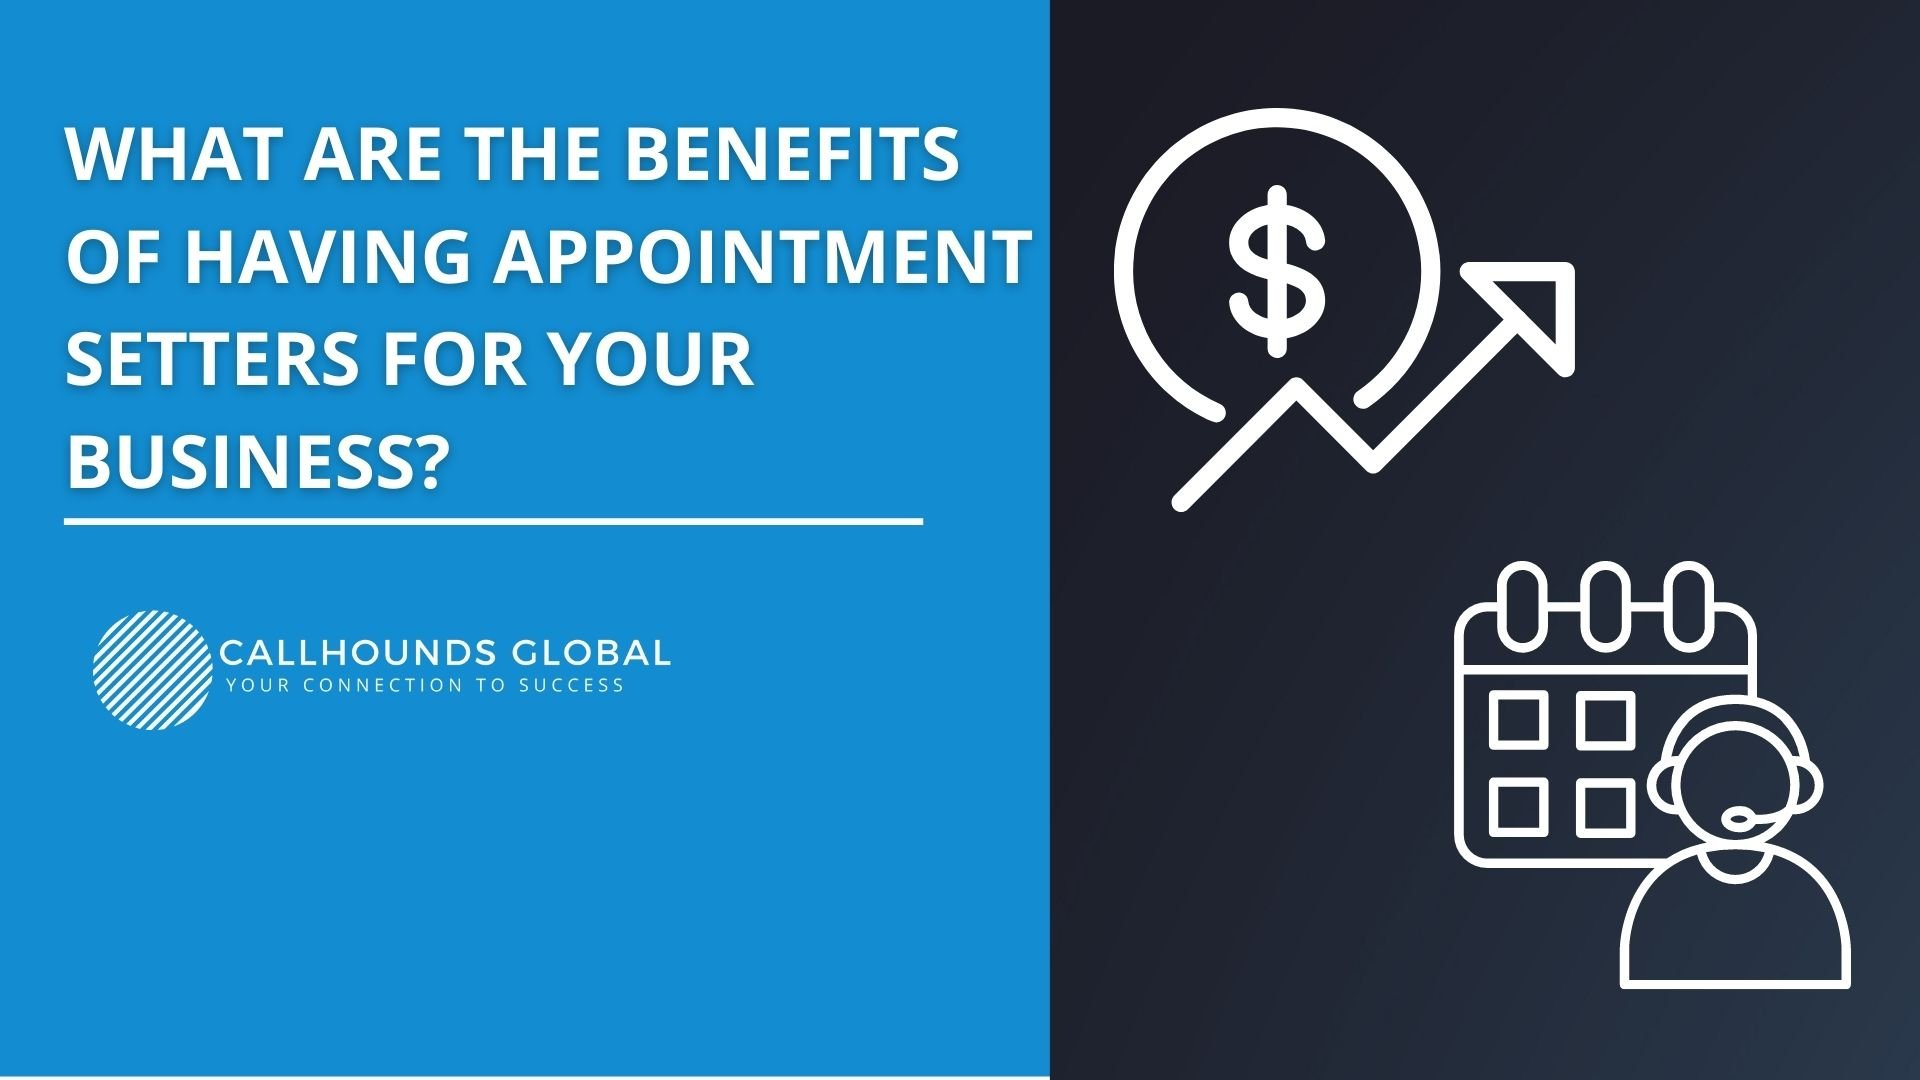 Business benefits of appointment setters